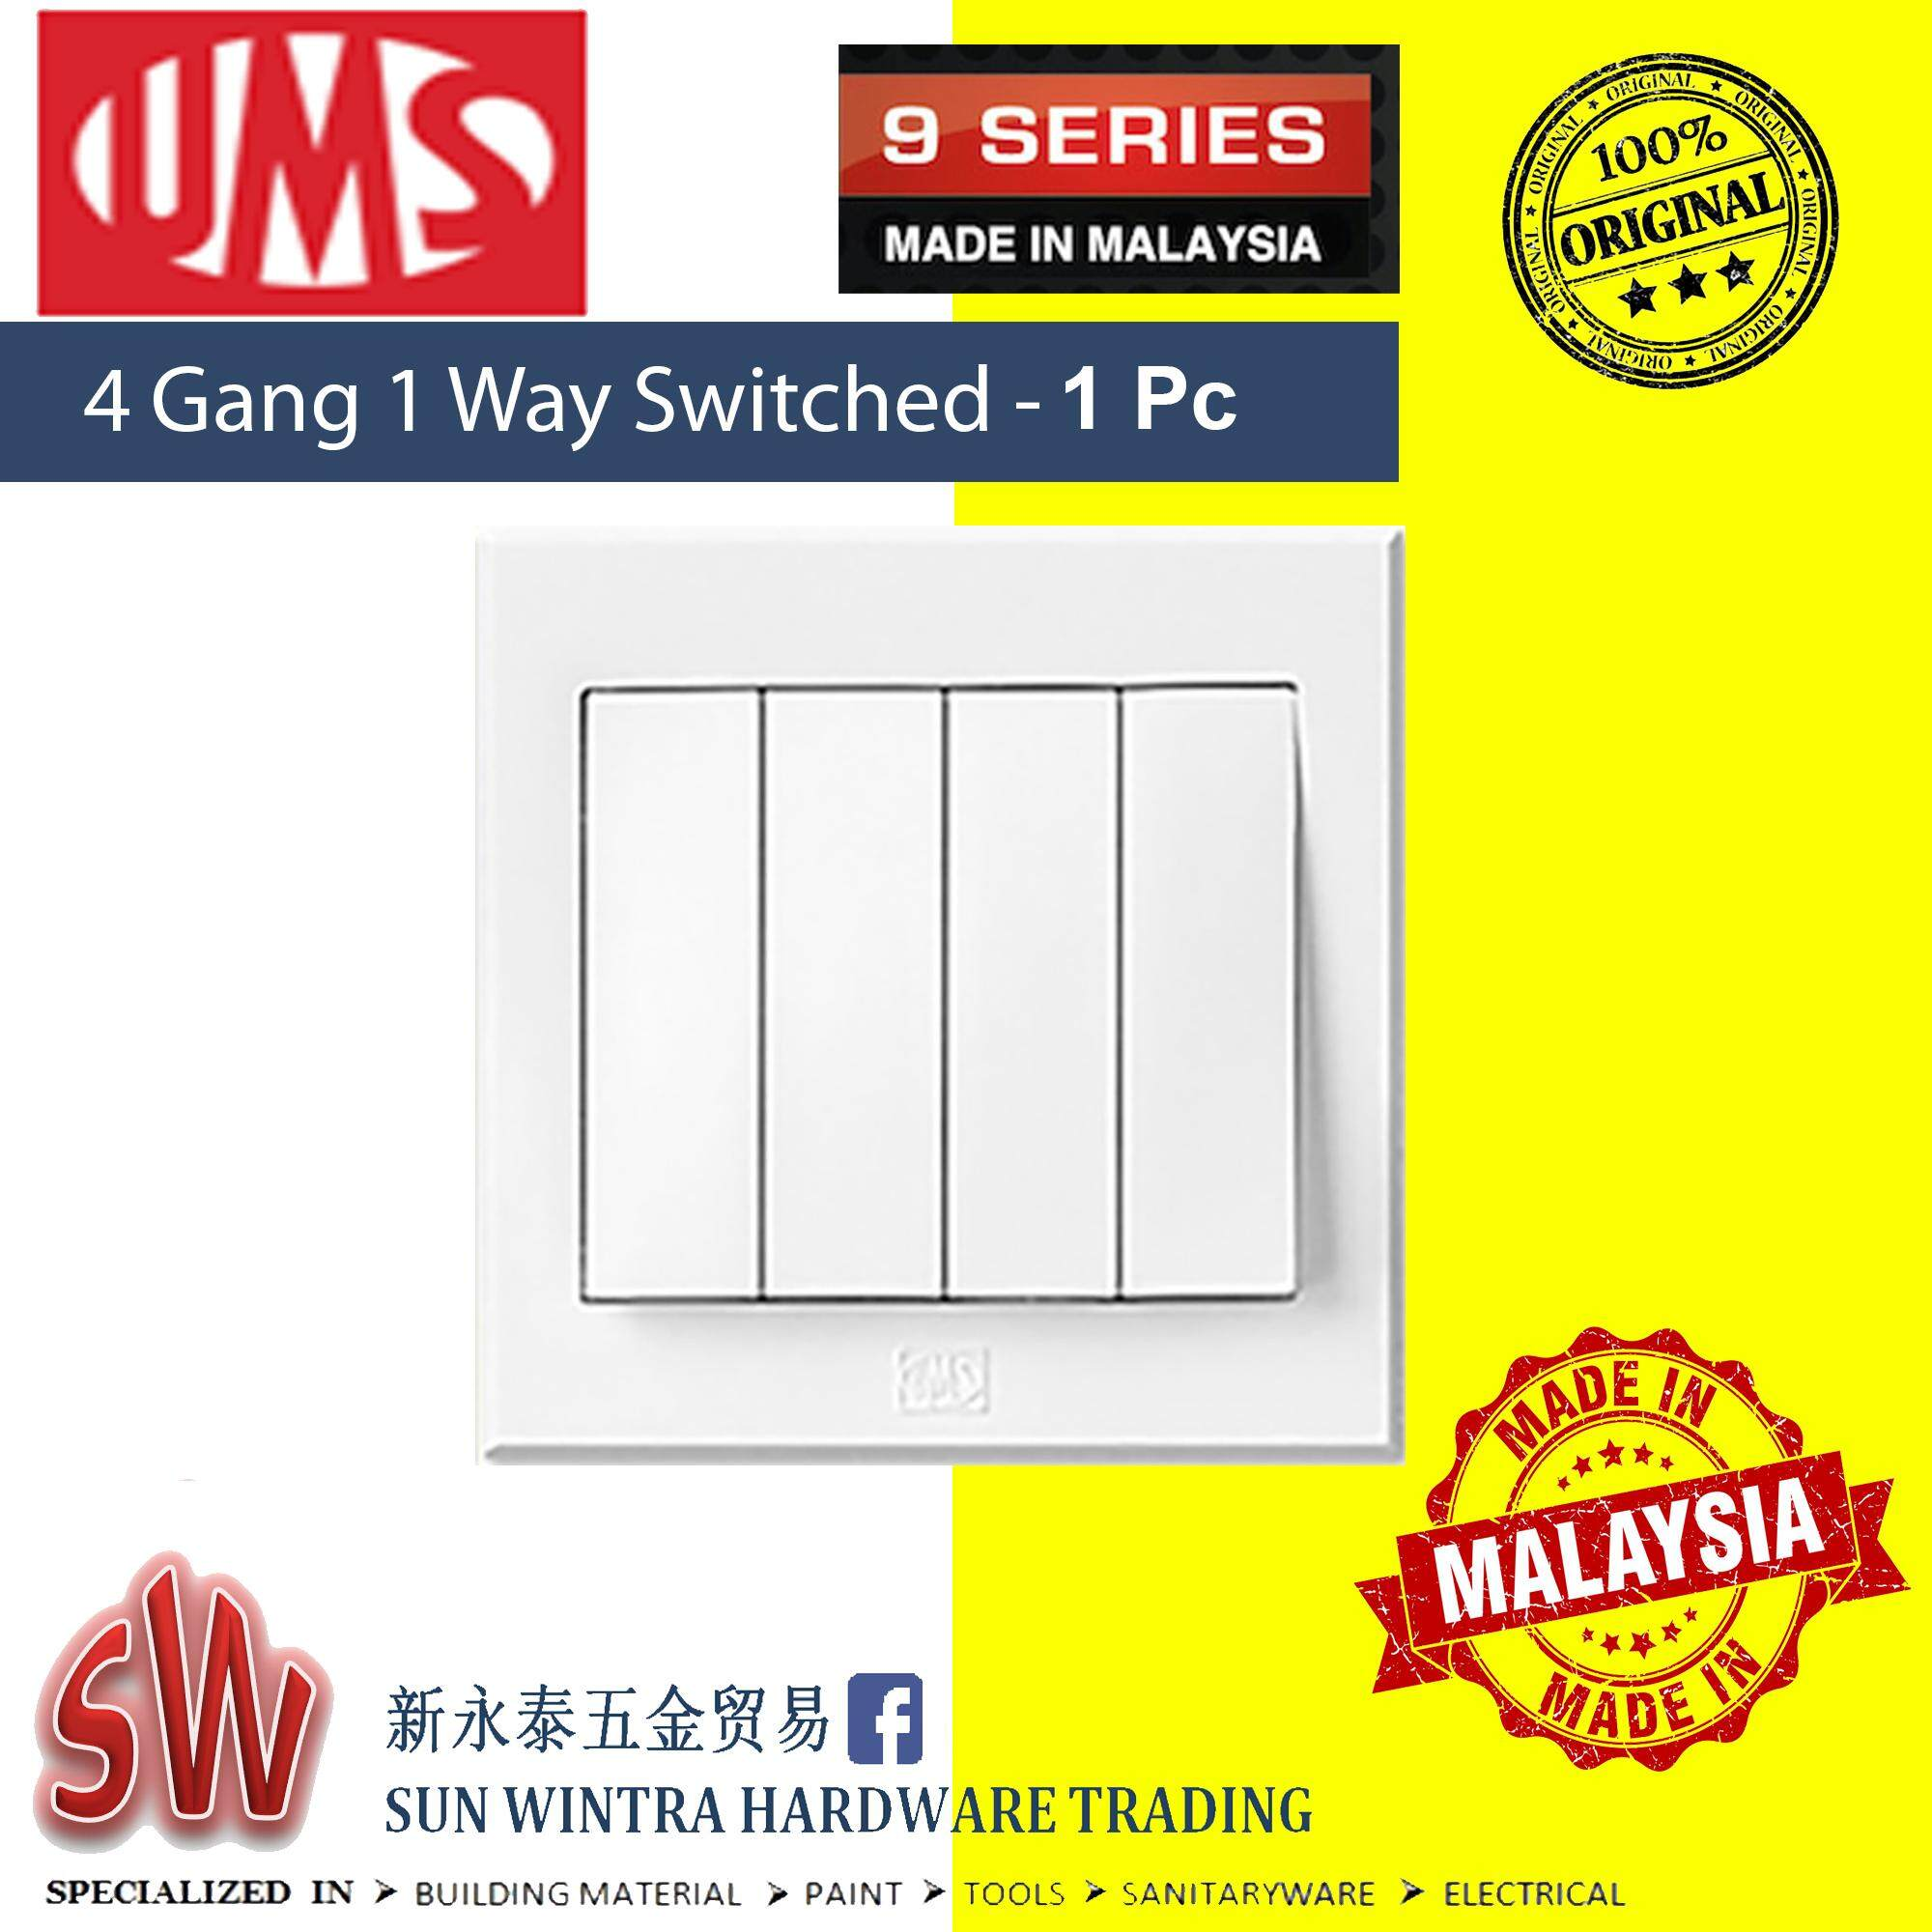 UMS 9 Series 4 Gang 1 Way Switched 1 Pc